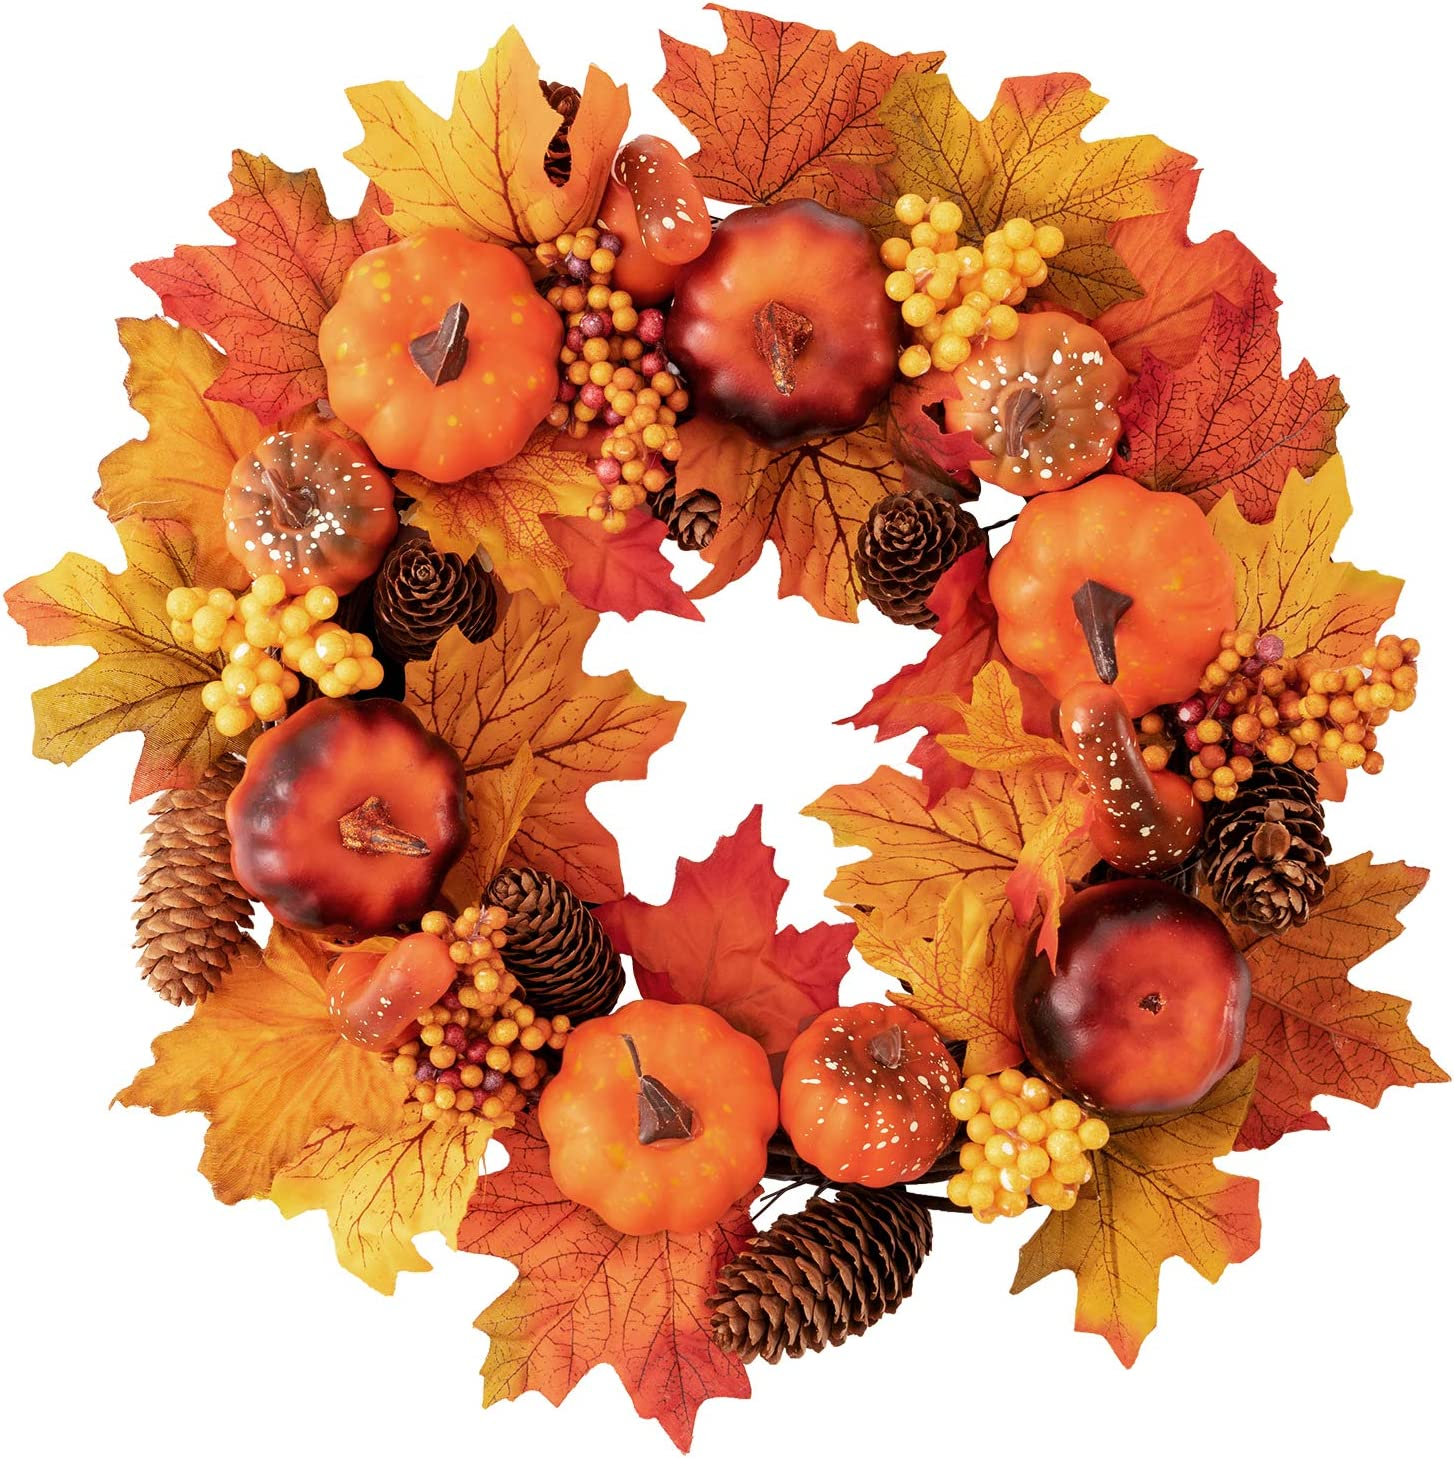 MoonLa 15 inch Fall Door Wreath Autumn Maple Leaf Pumpkin Pinecone Harvest Wreath for Front Door Thanksgiving Halloween Decorations Home Decor